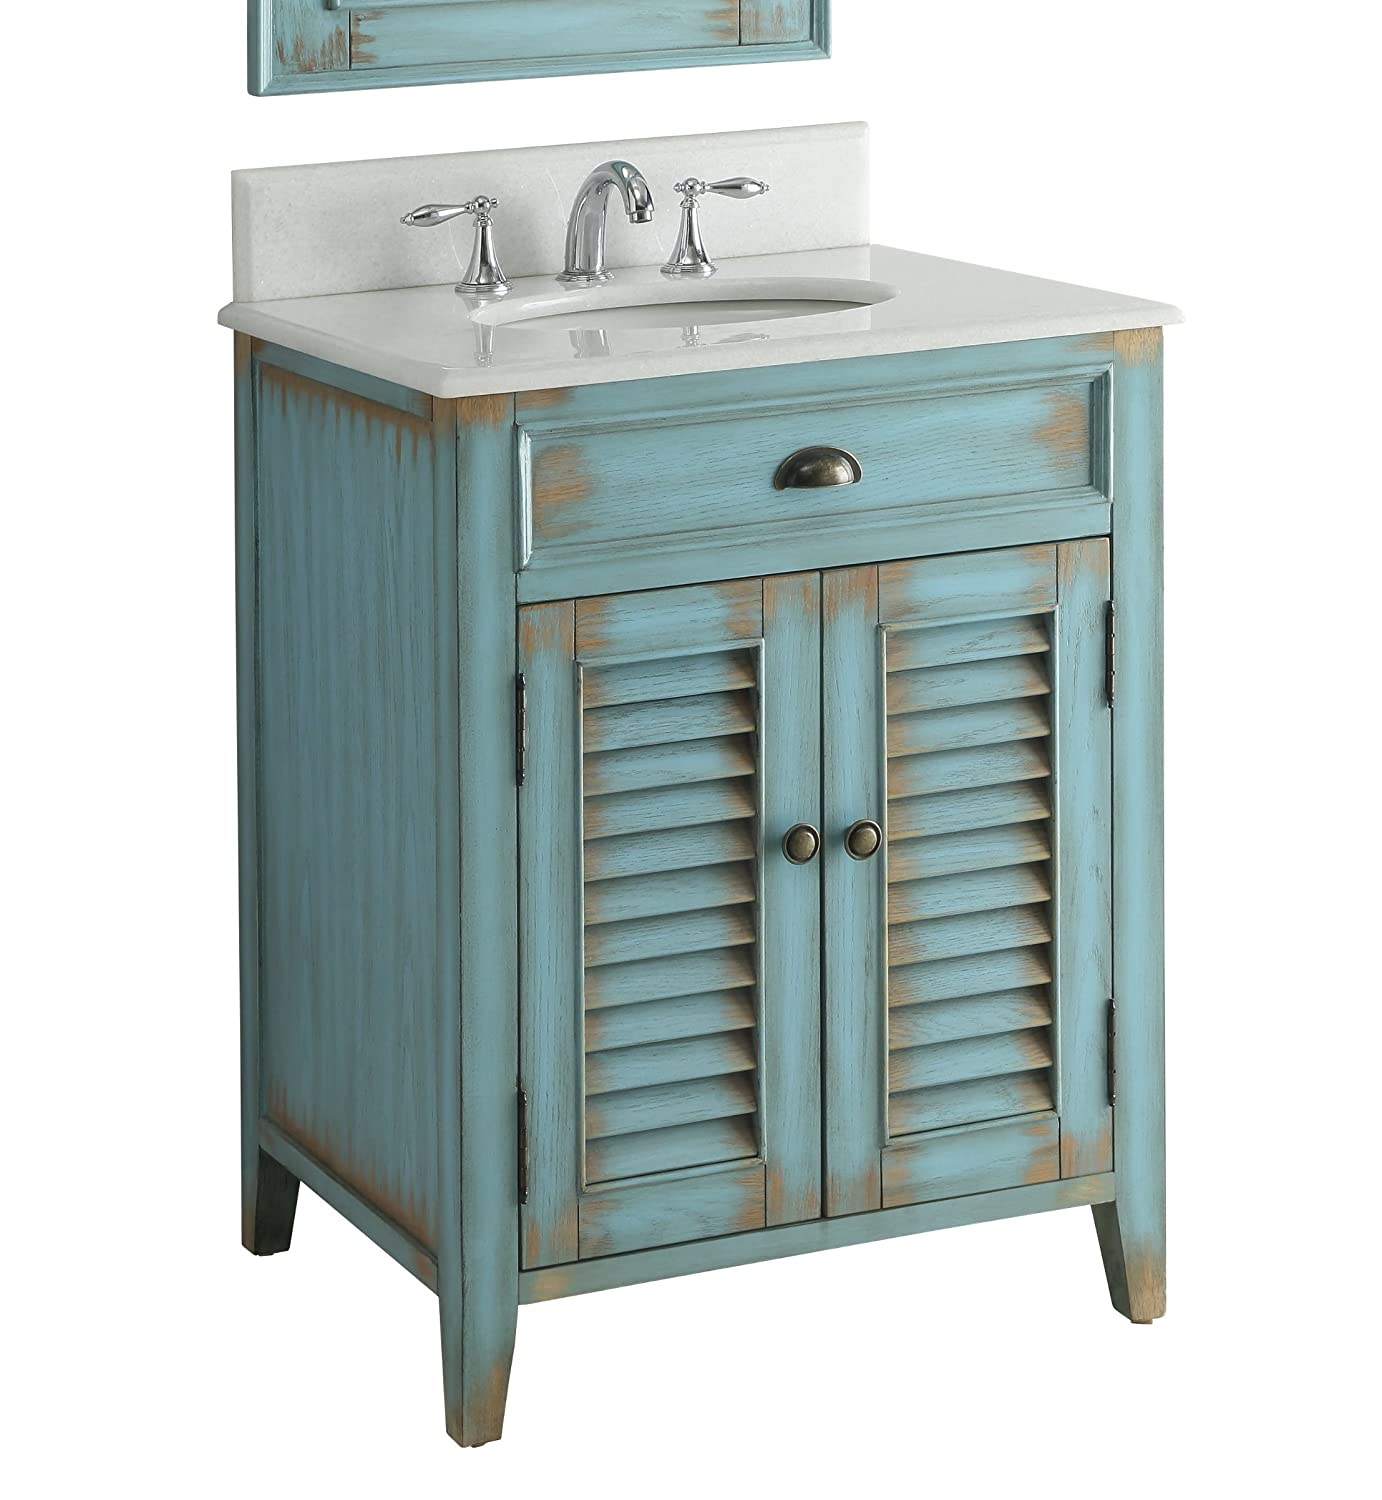 for design distressed restoration size inch storage barnwood cabinets furniture double country antique wood hardware sink lighting rustic vanities how and stores to cheap style grey full green solid shaker outlet dresser bathroom uk reclaimed top vanity sale weathered of